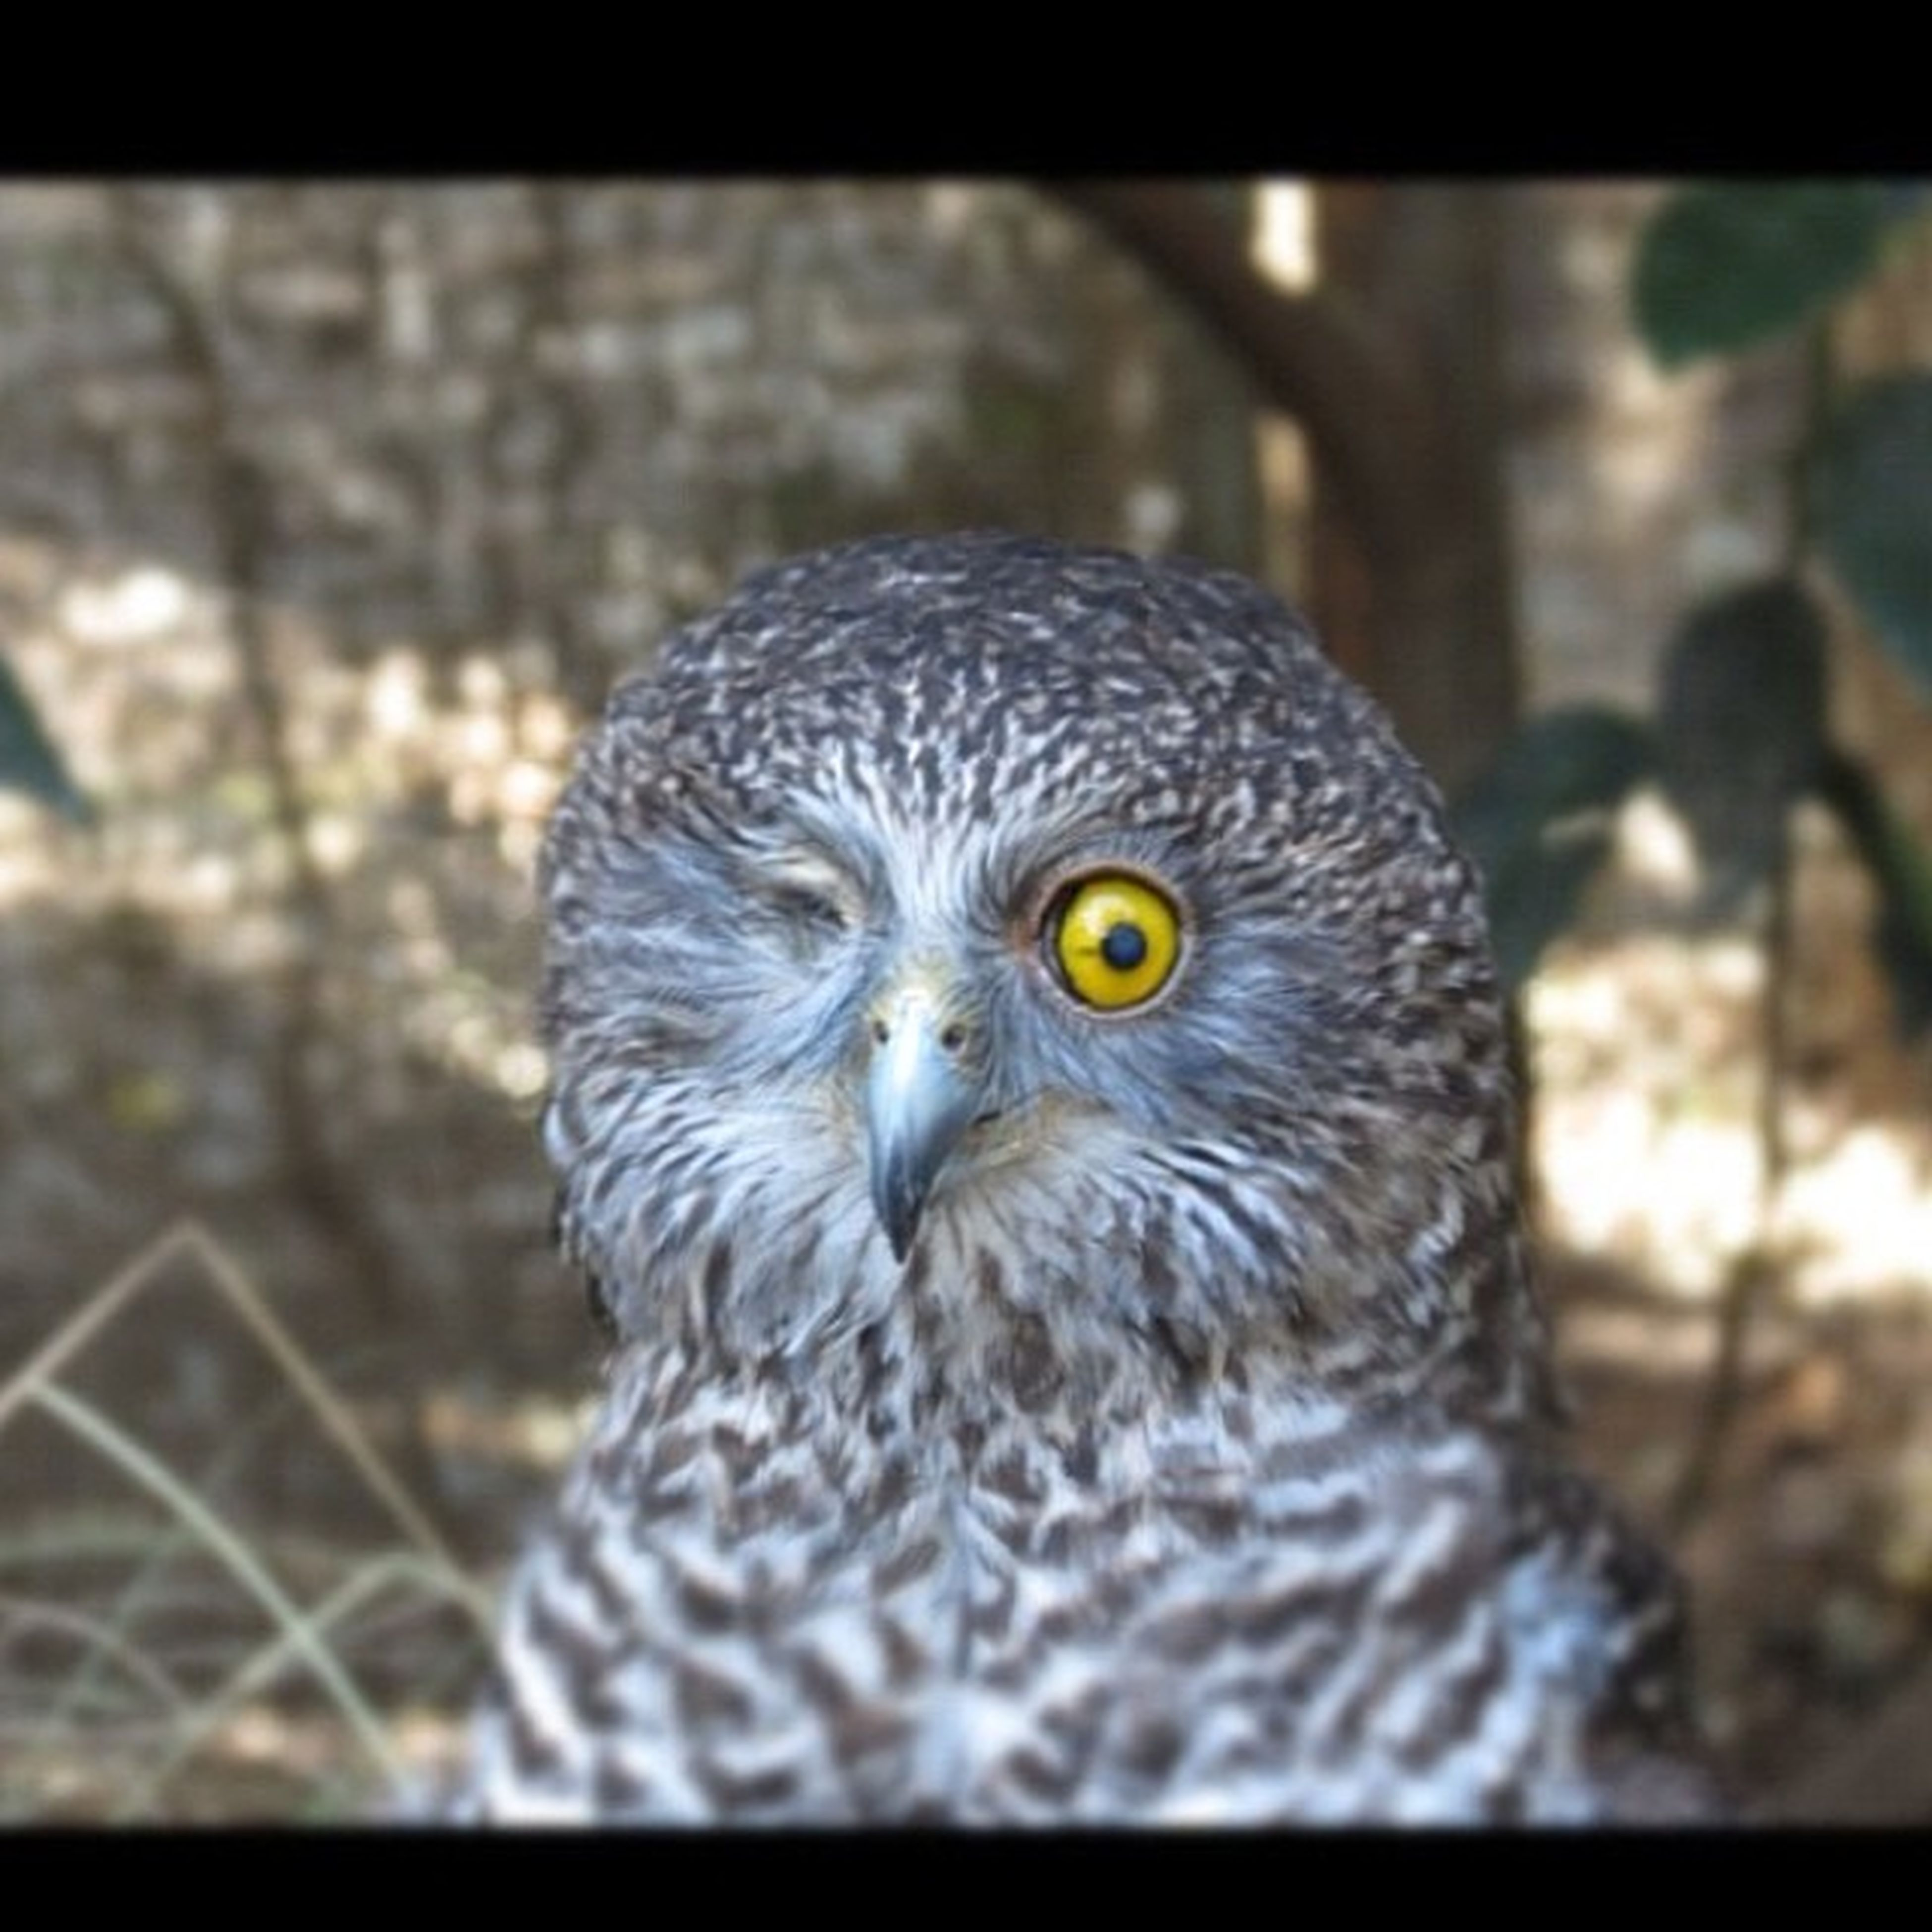 animal themes, one animal, bird, animals in the wild, wildlife, focus on foreground, close-up, owl, bird of prey, beak, animal head, portrait, looking at camera, perching, front view, nature, animal eye, outdoors, day